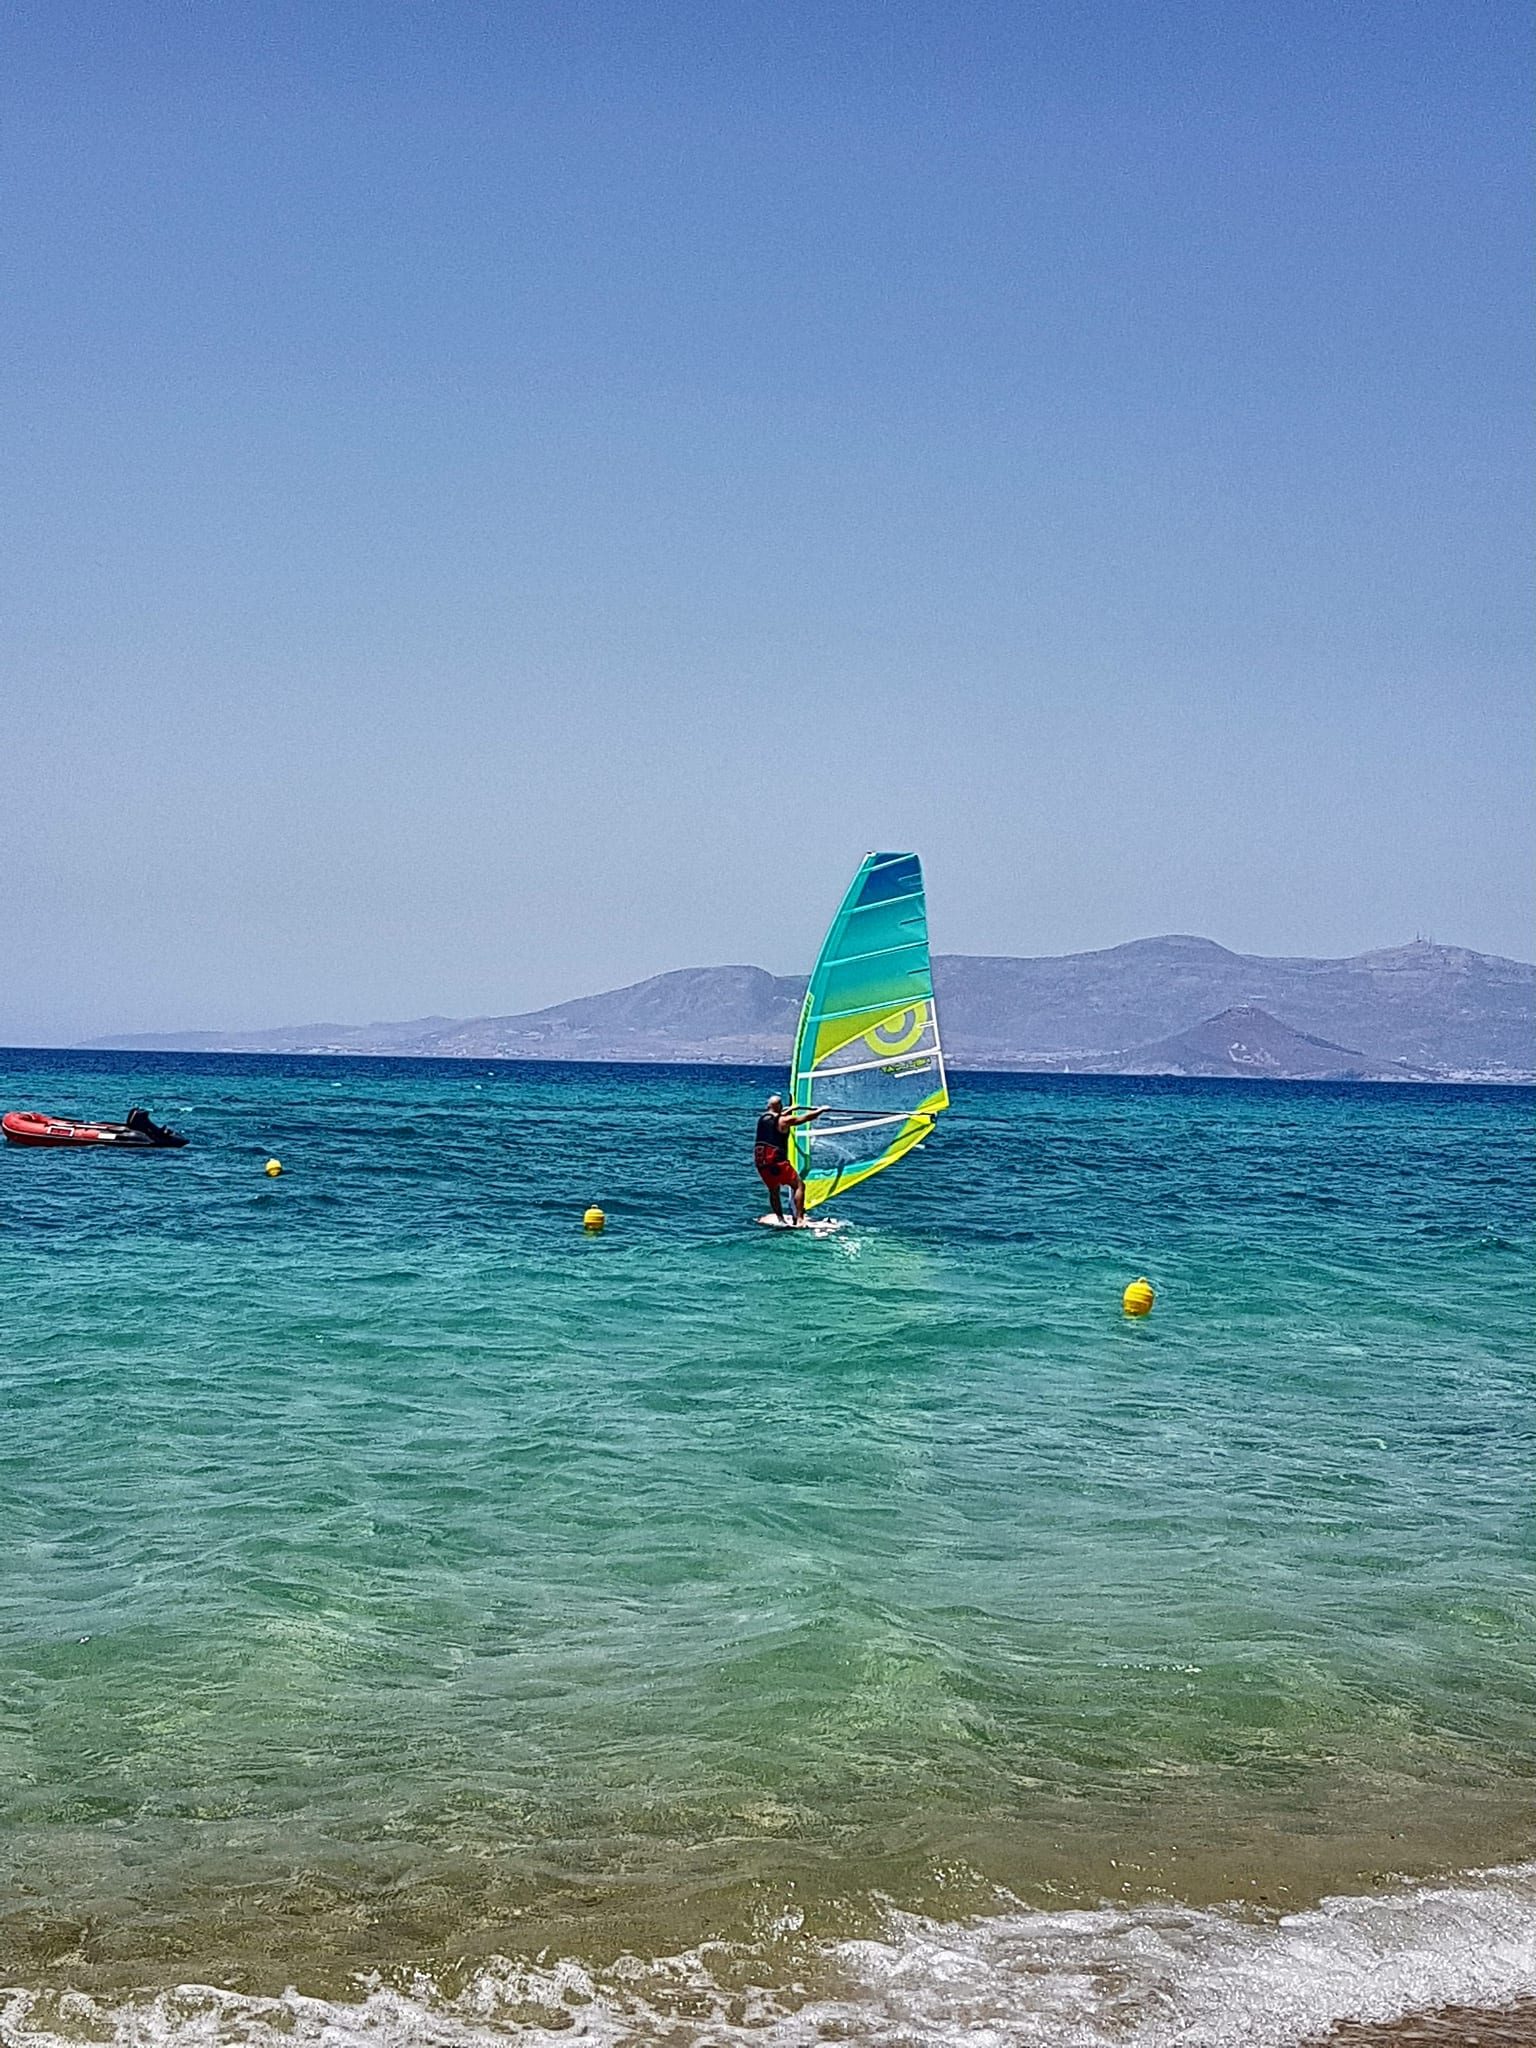 Things To Do In Naxos - 10 Amazing Places You Need To Explore - Surfing in Plaka beach